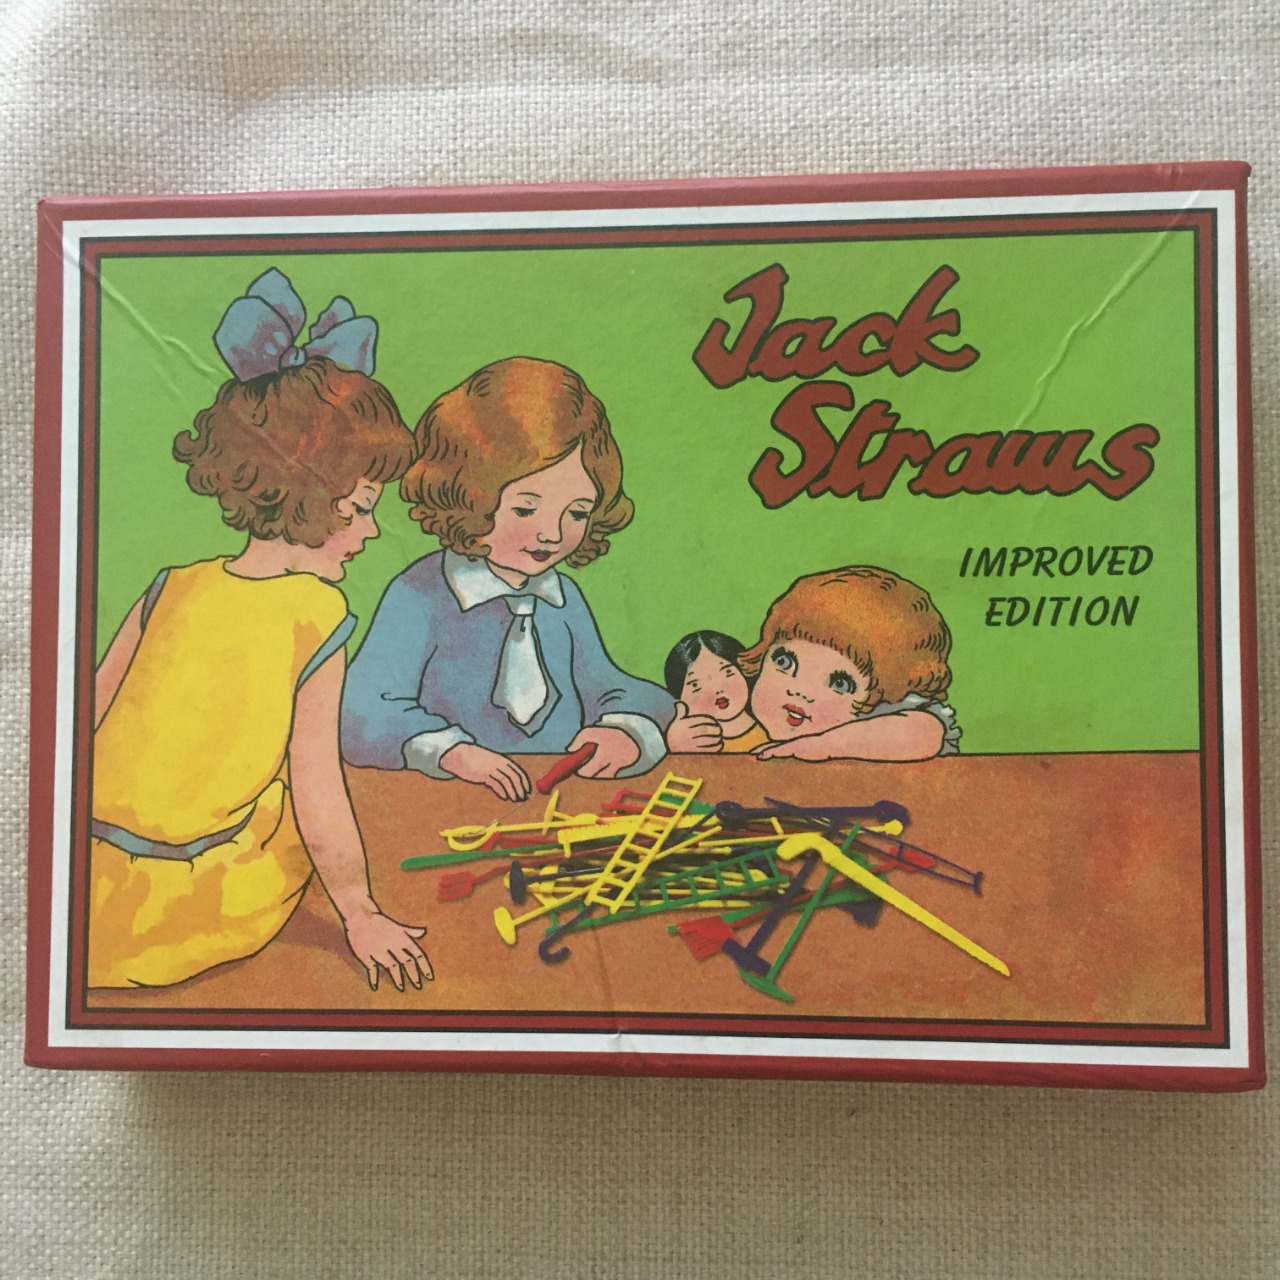 Jack Straws Improved Edition Board Game